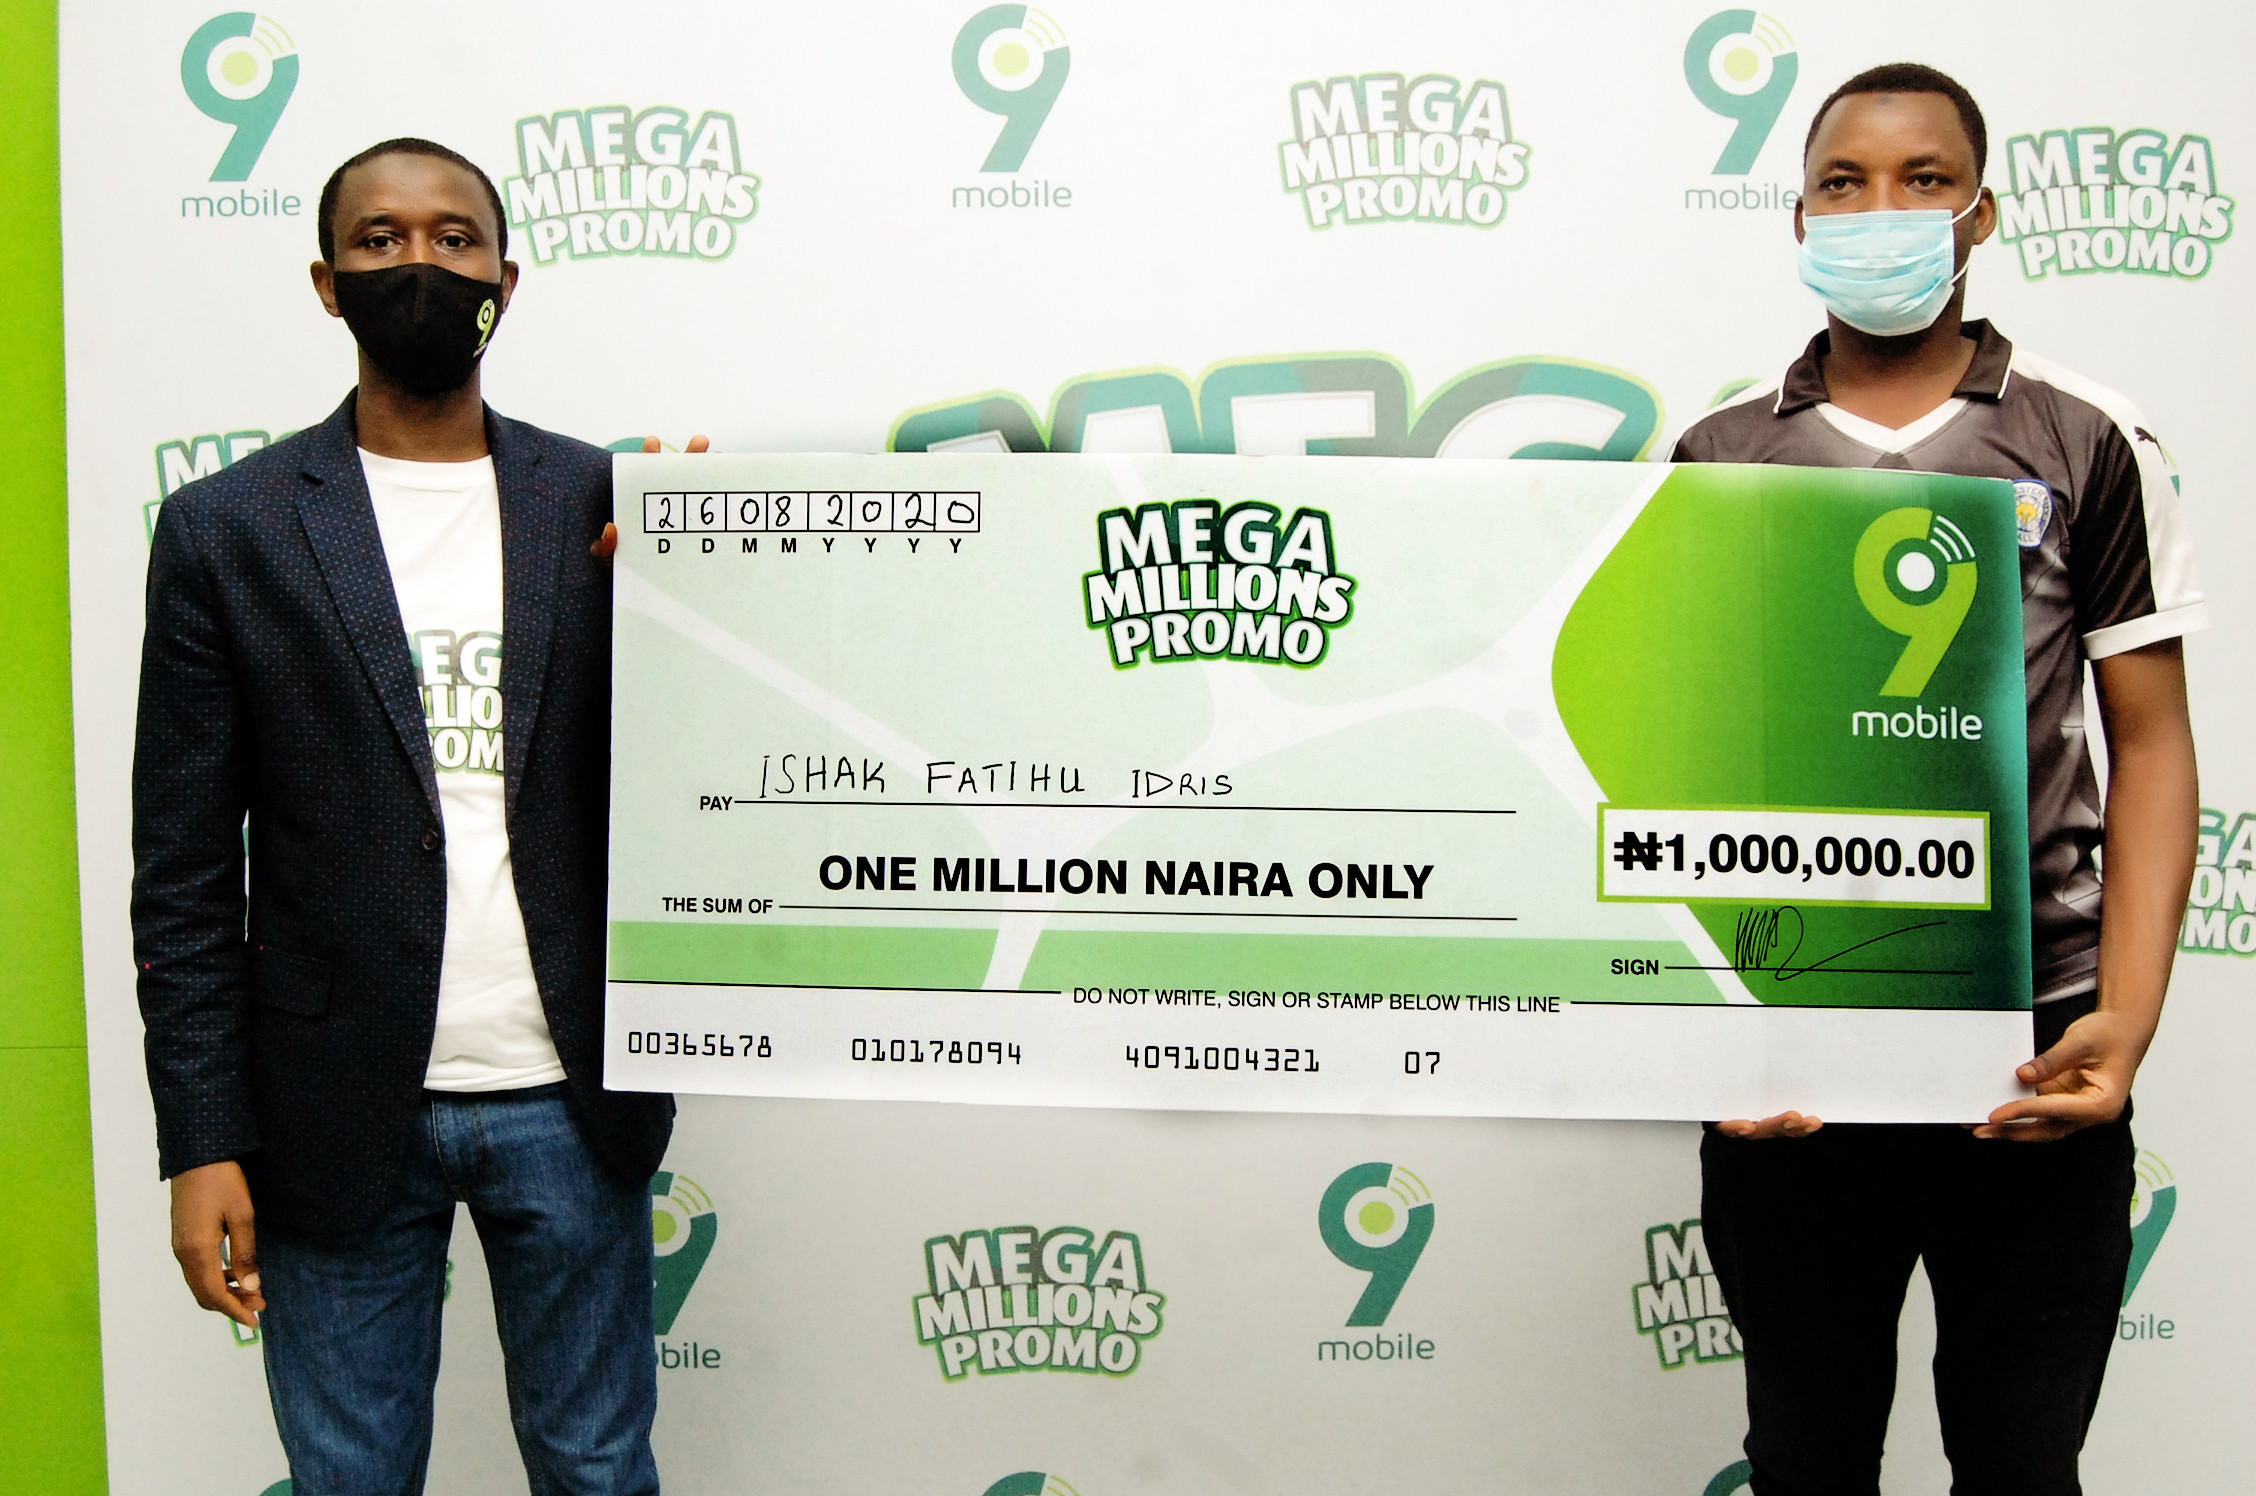 9mobile Customers to get 100% data bonus, free airtime in the ongoing Mega Millions Promo